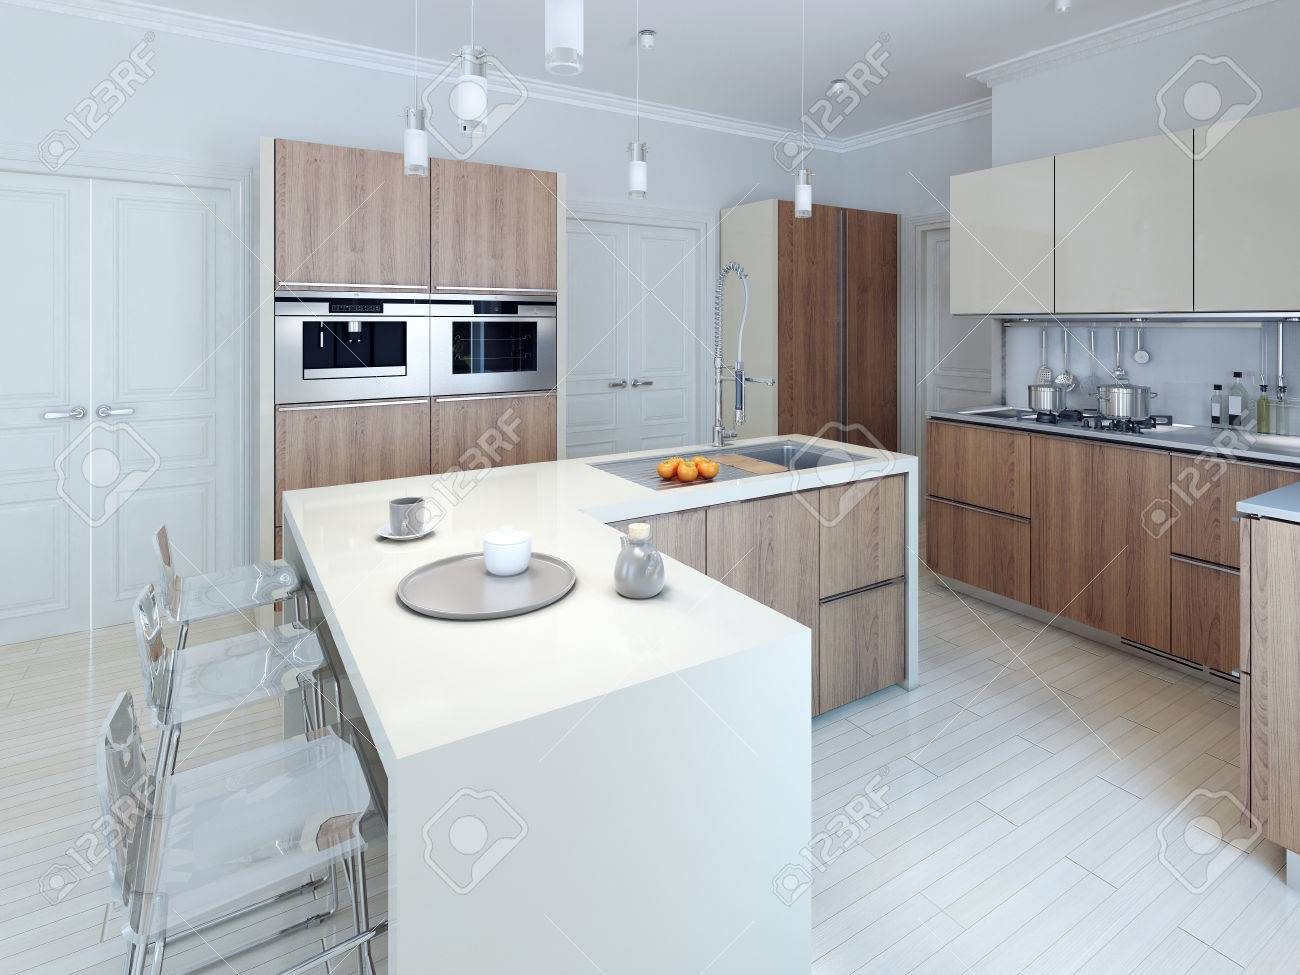 Modern Functional Kitchen Design. 3d Render Stock Photo, Picture And ...